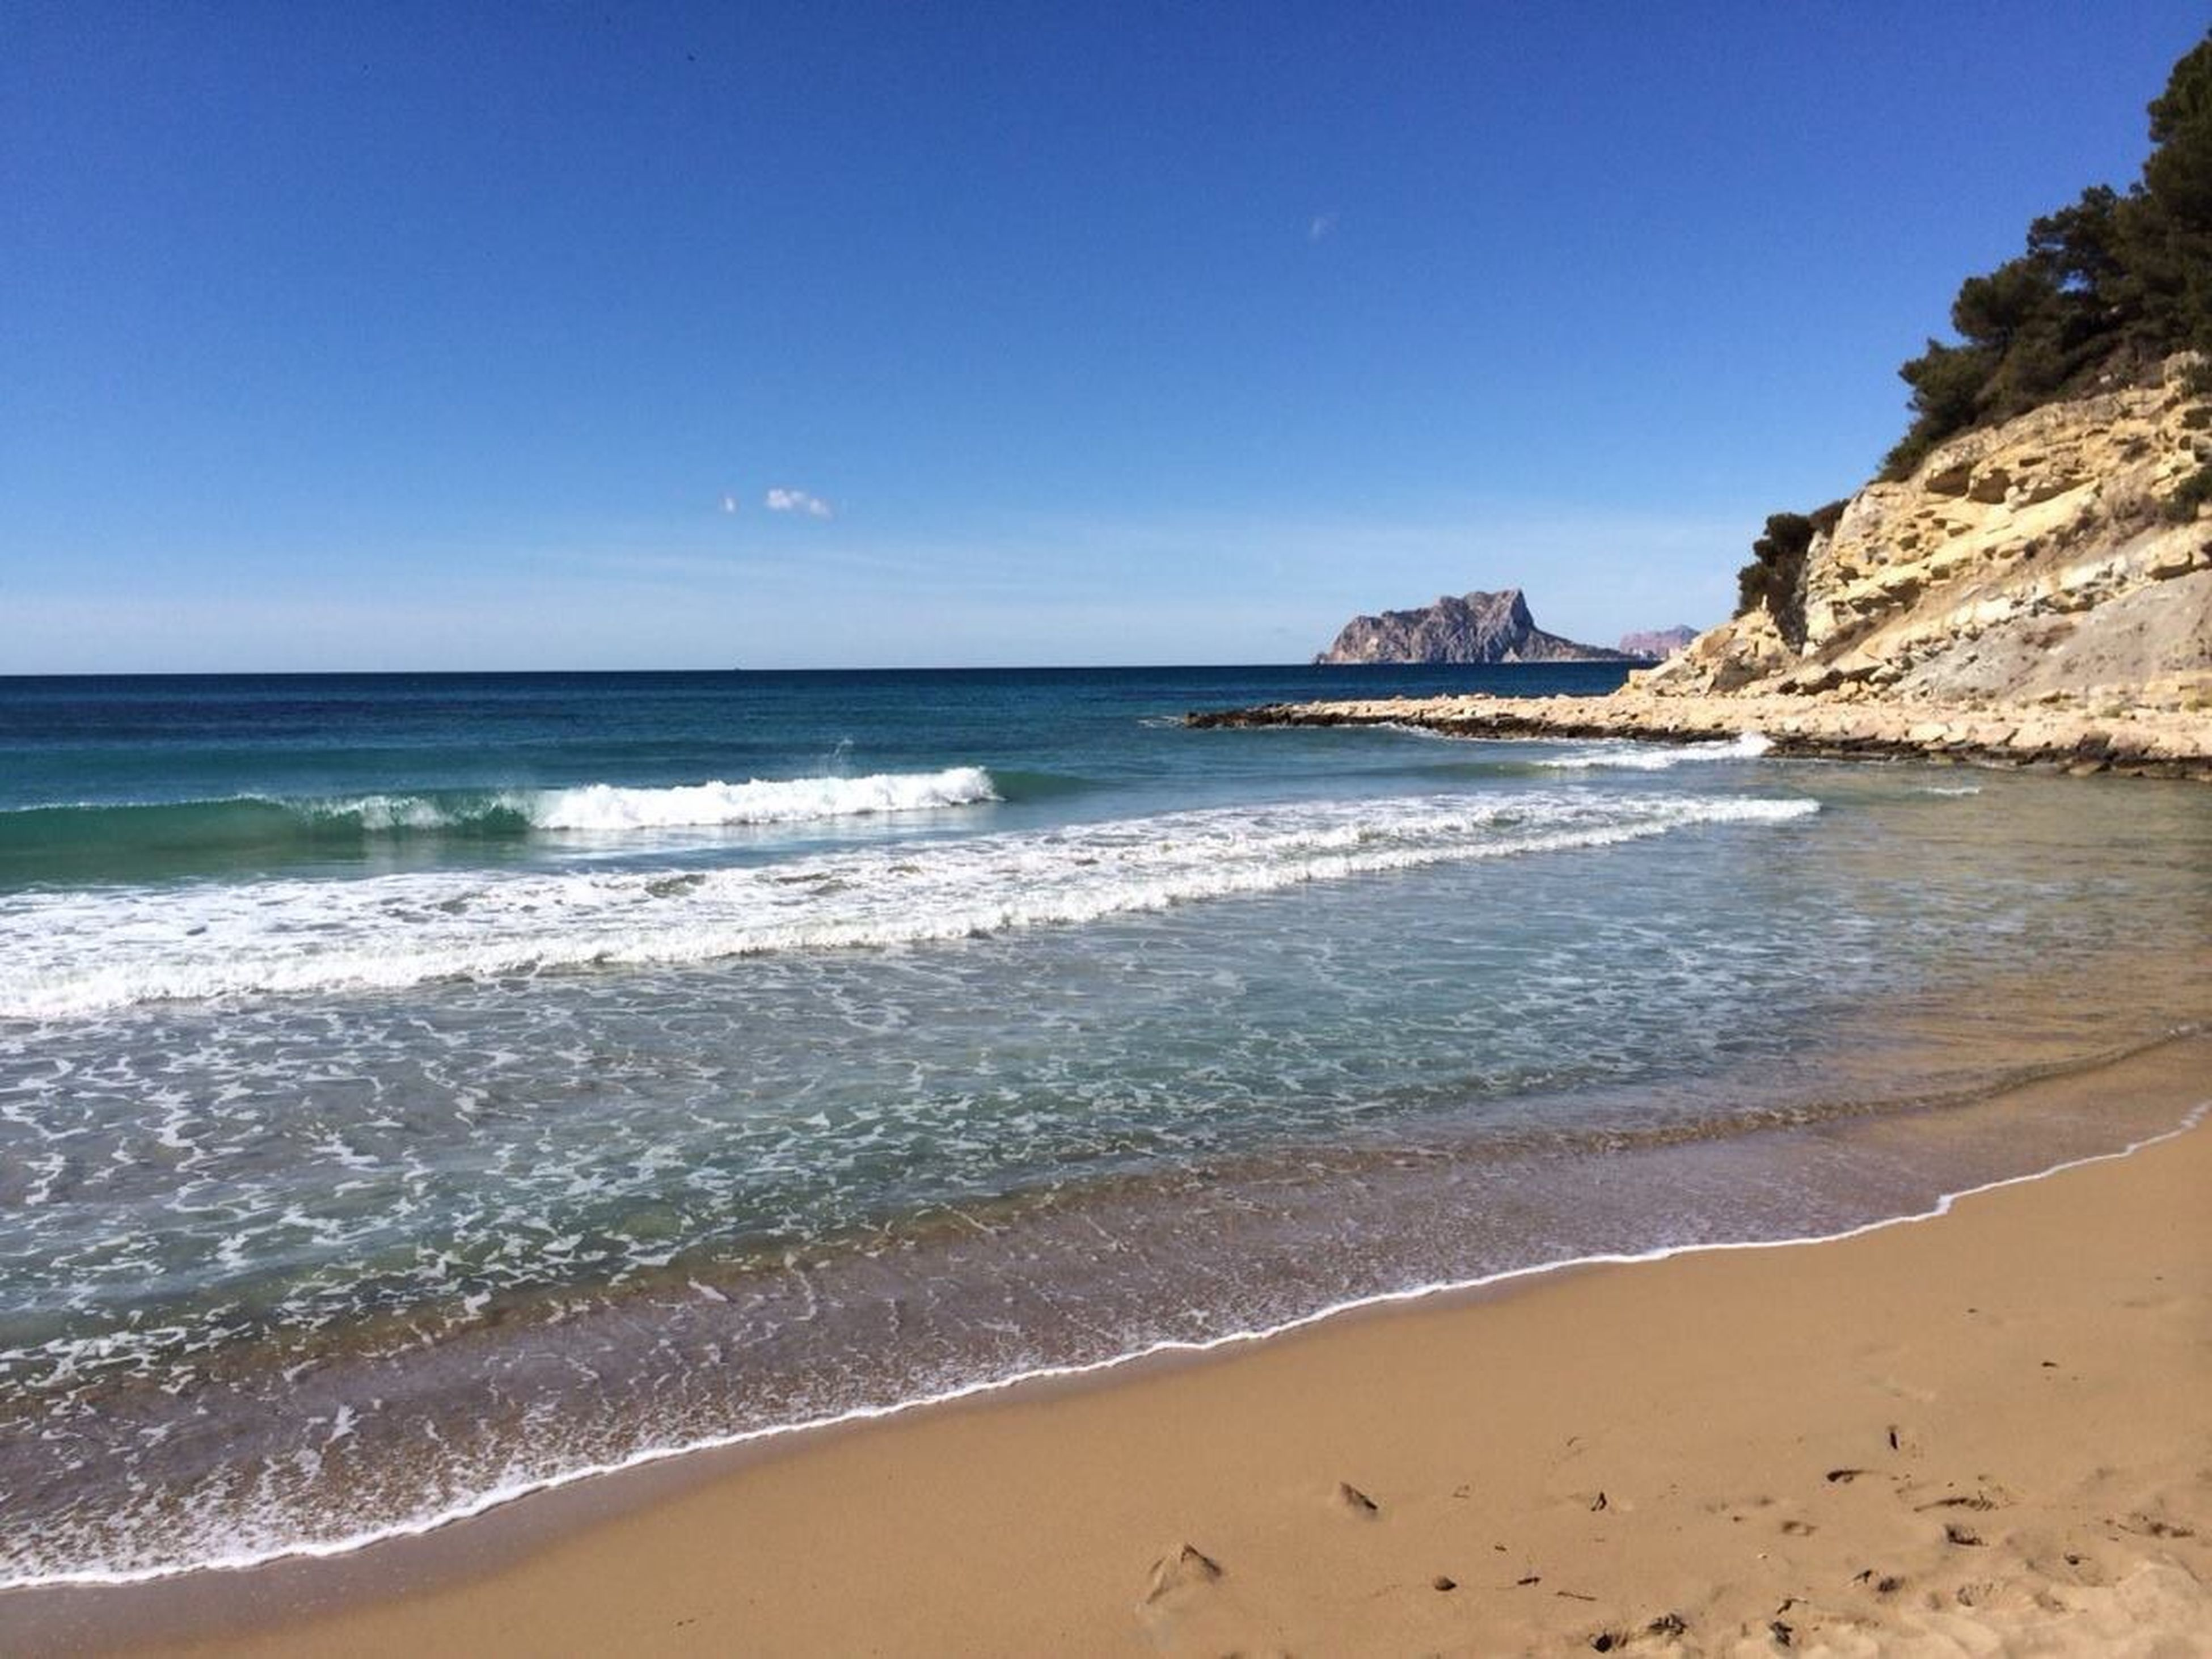 sea, beach, water, horizon over water, sand, shore, clear sky, scenics, beauty in nature, tranquil scene, tranquility, blue, wave, surf, nature, copy space, coastline, idyllic, sky, day